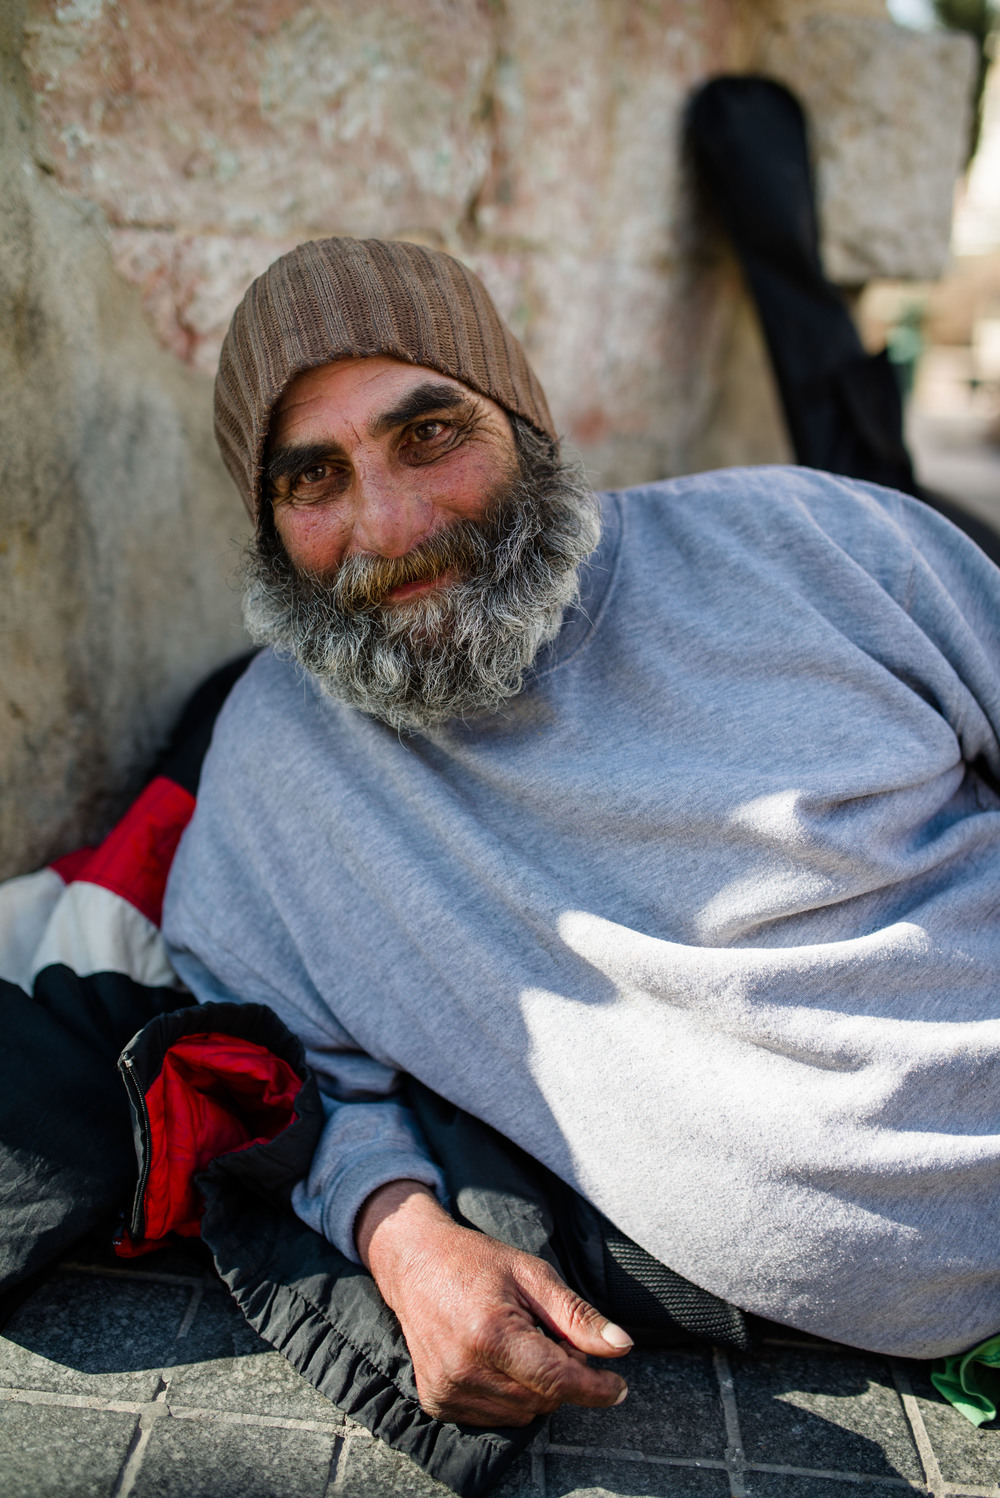 Don, a homeless man in Jerusalem, Israel.